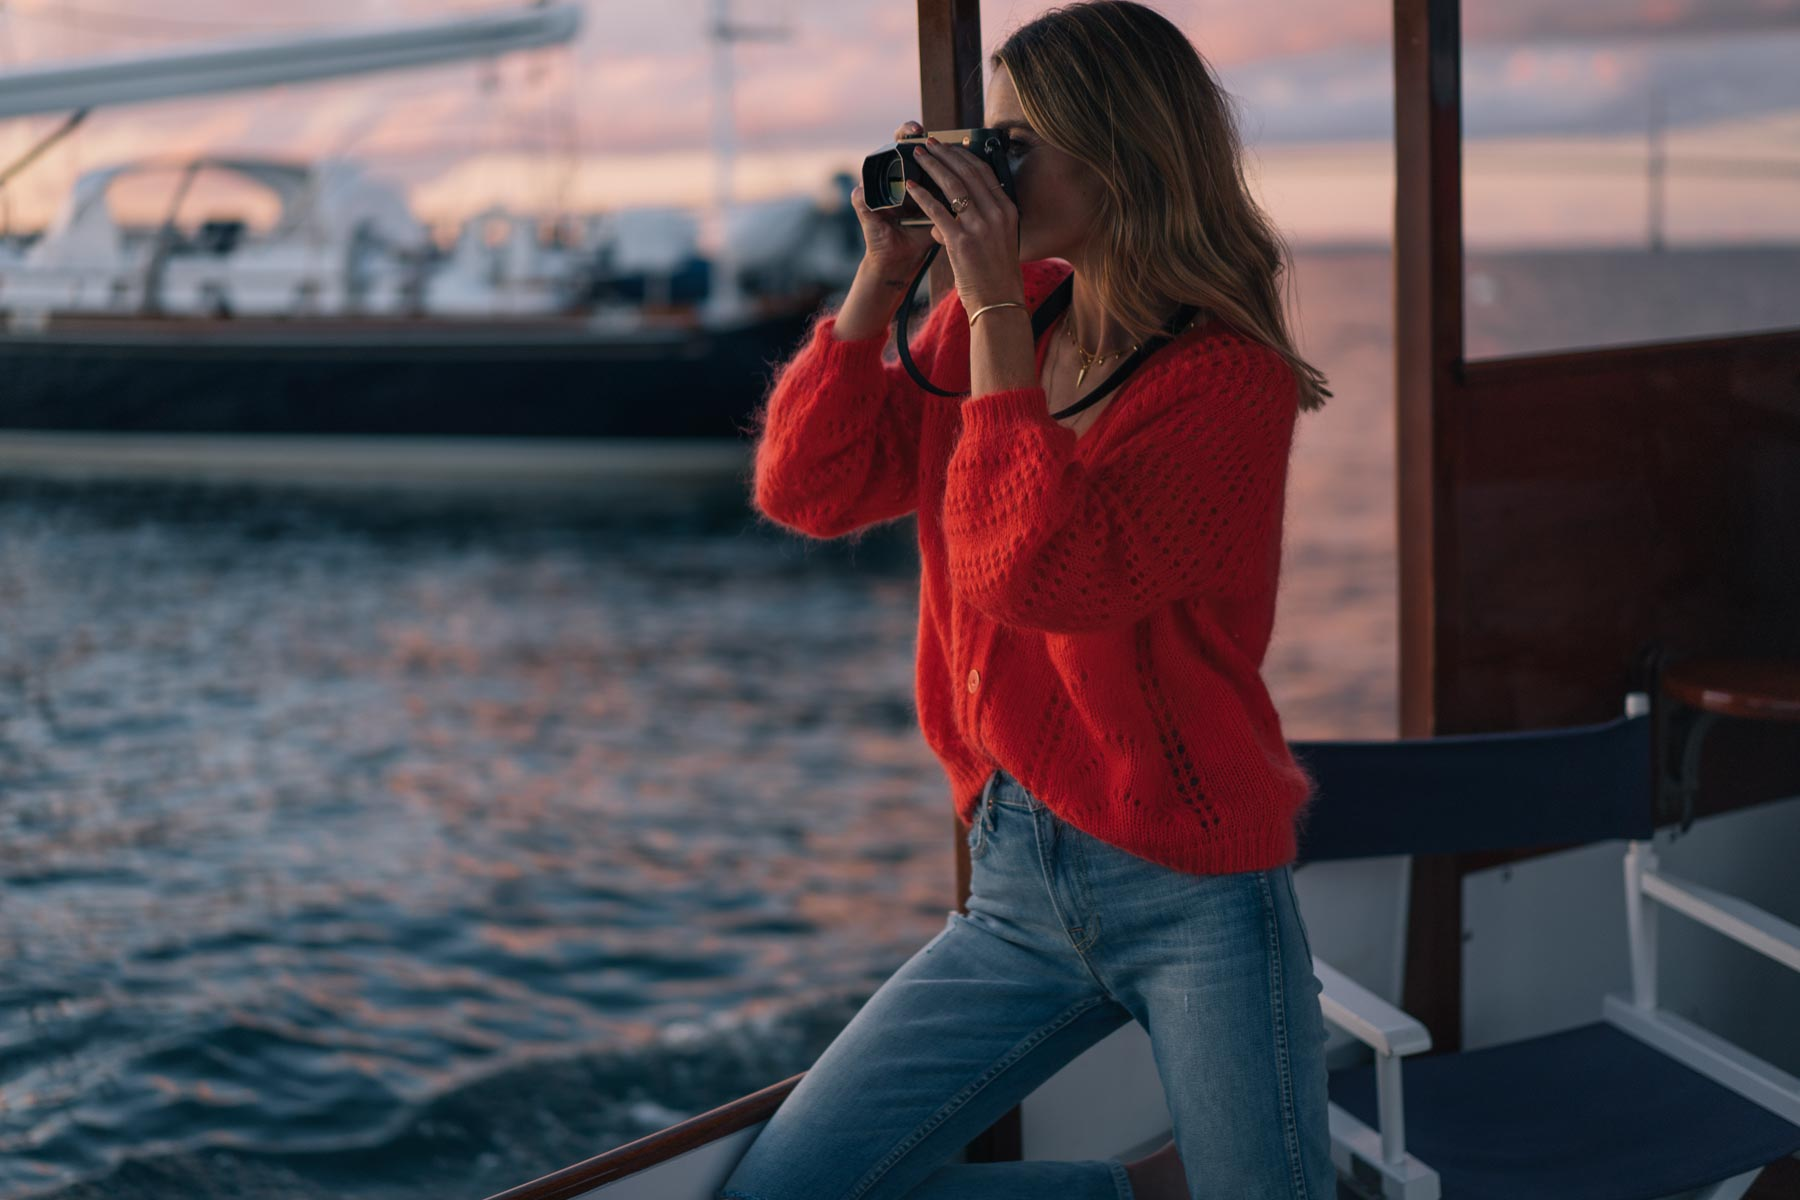 Jess Ann Kirby shoots the Newport sunset with a LeicaQ camera